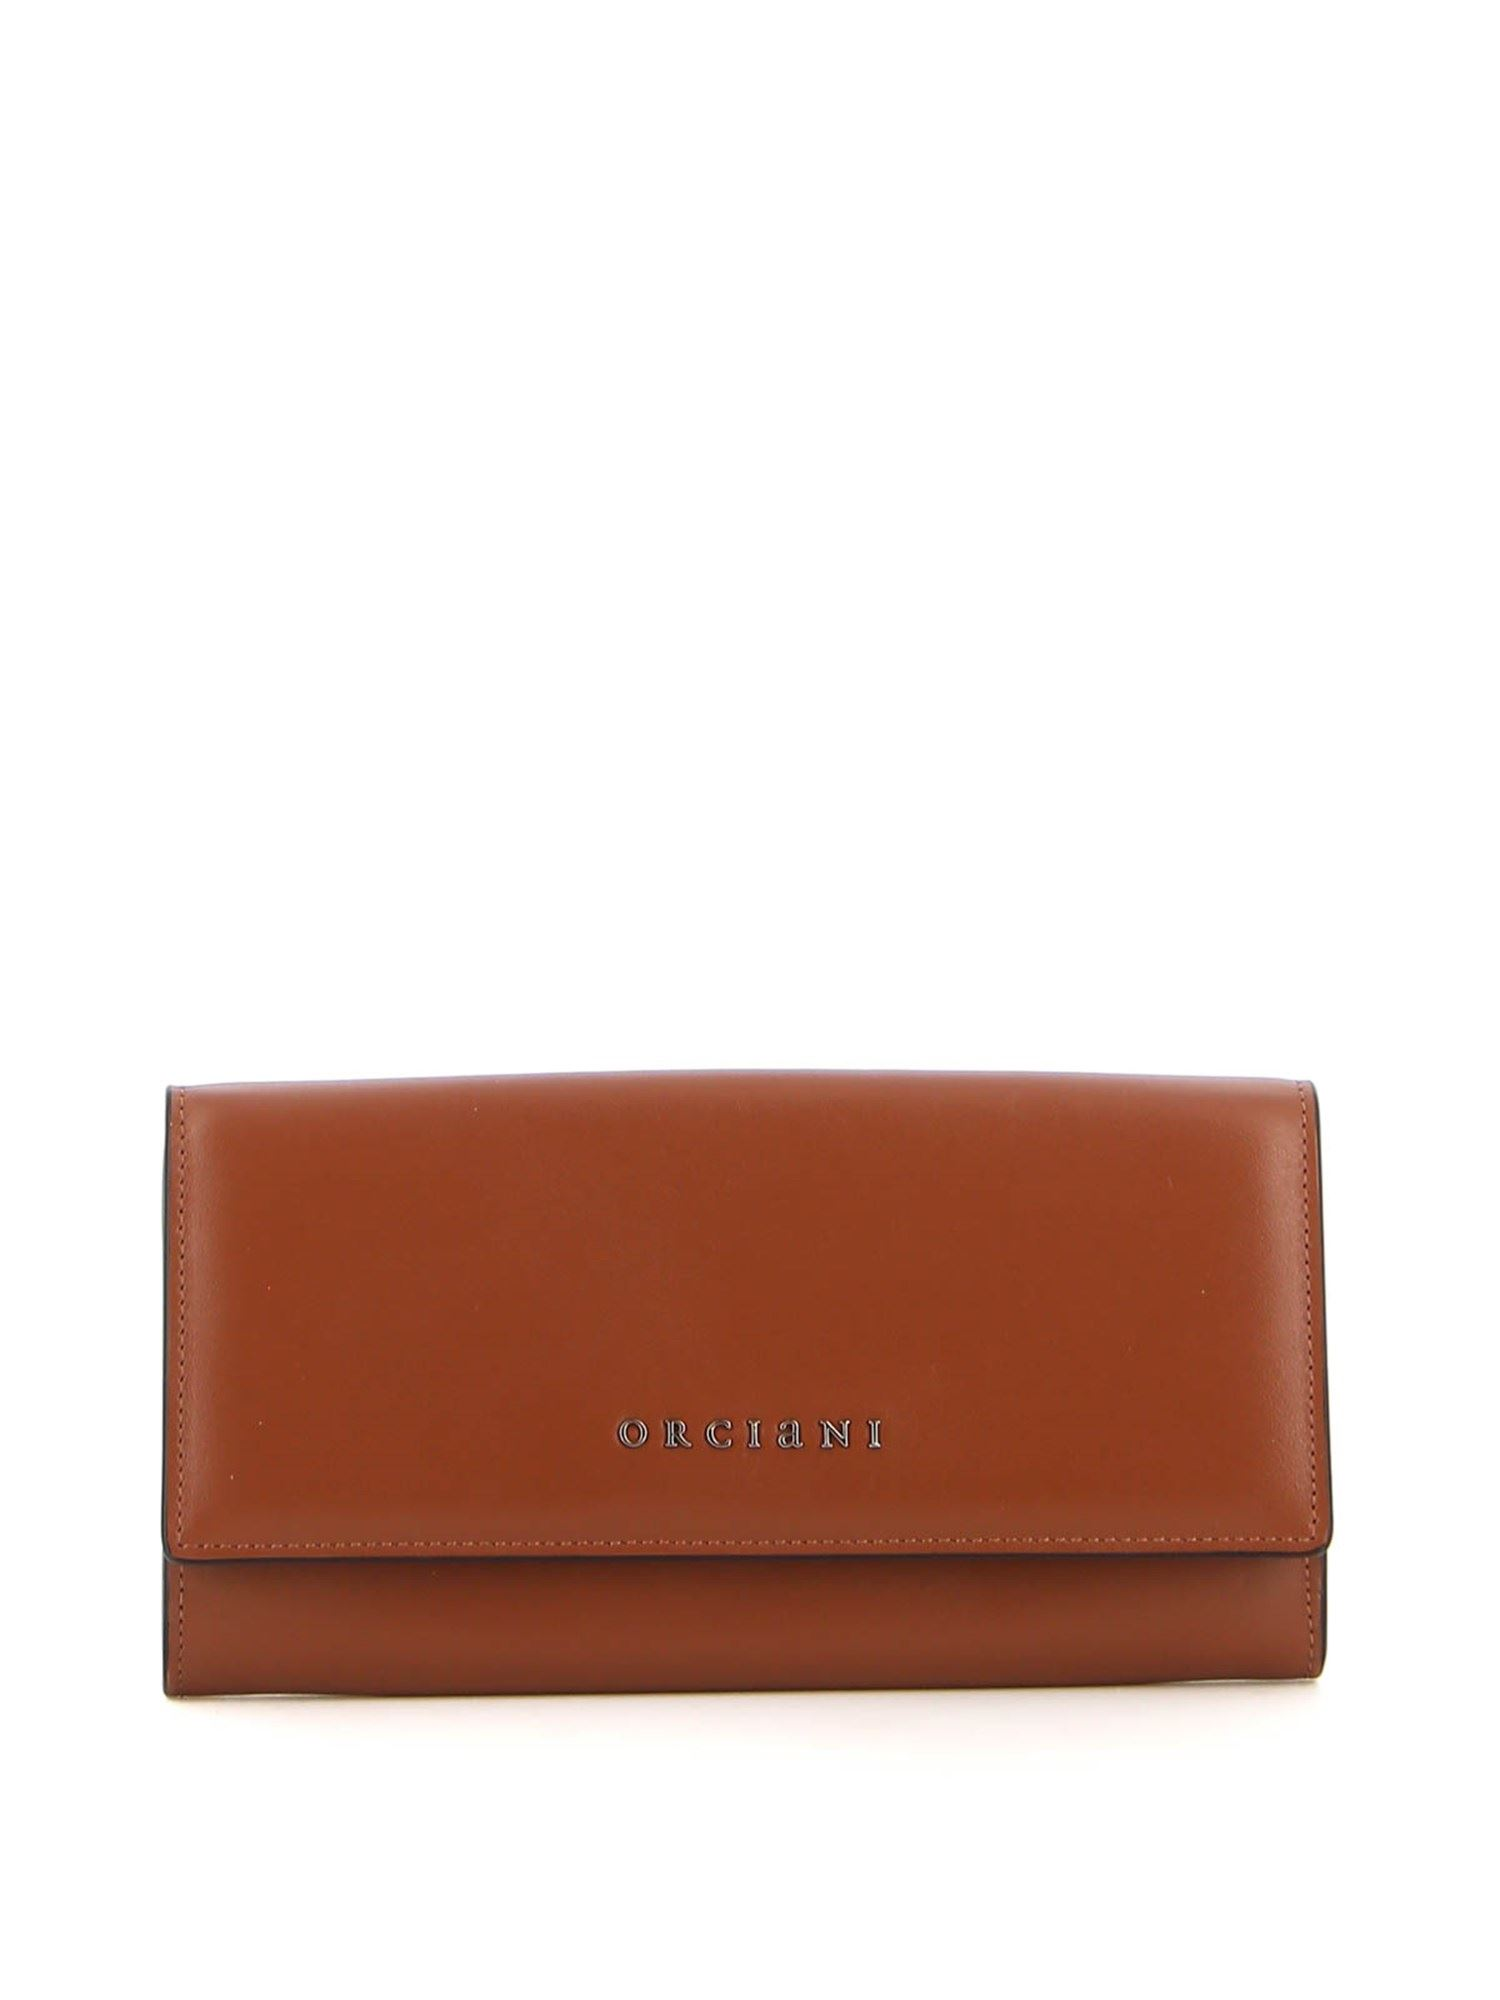 Orciani Wallets SOFT LEATHER WALLET IN BROWN